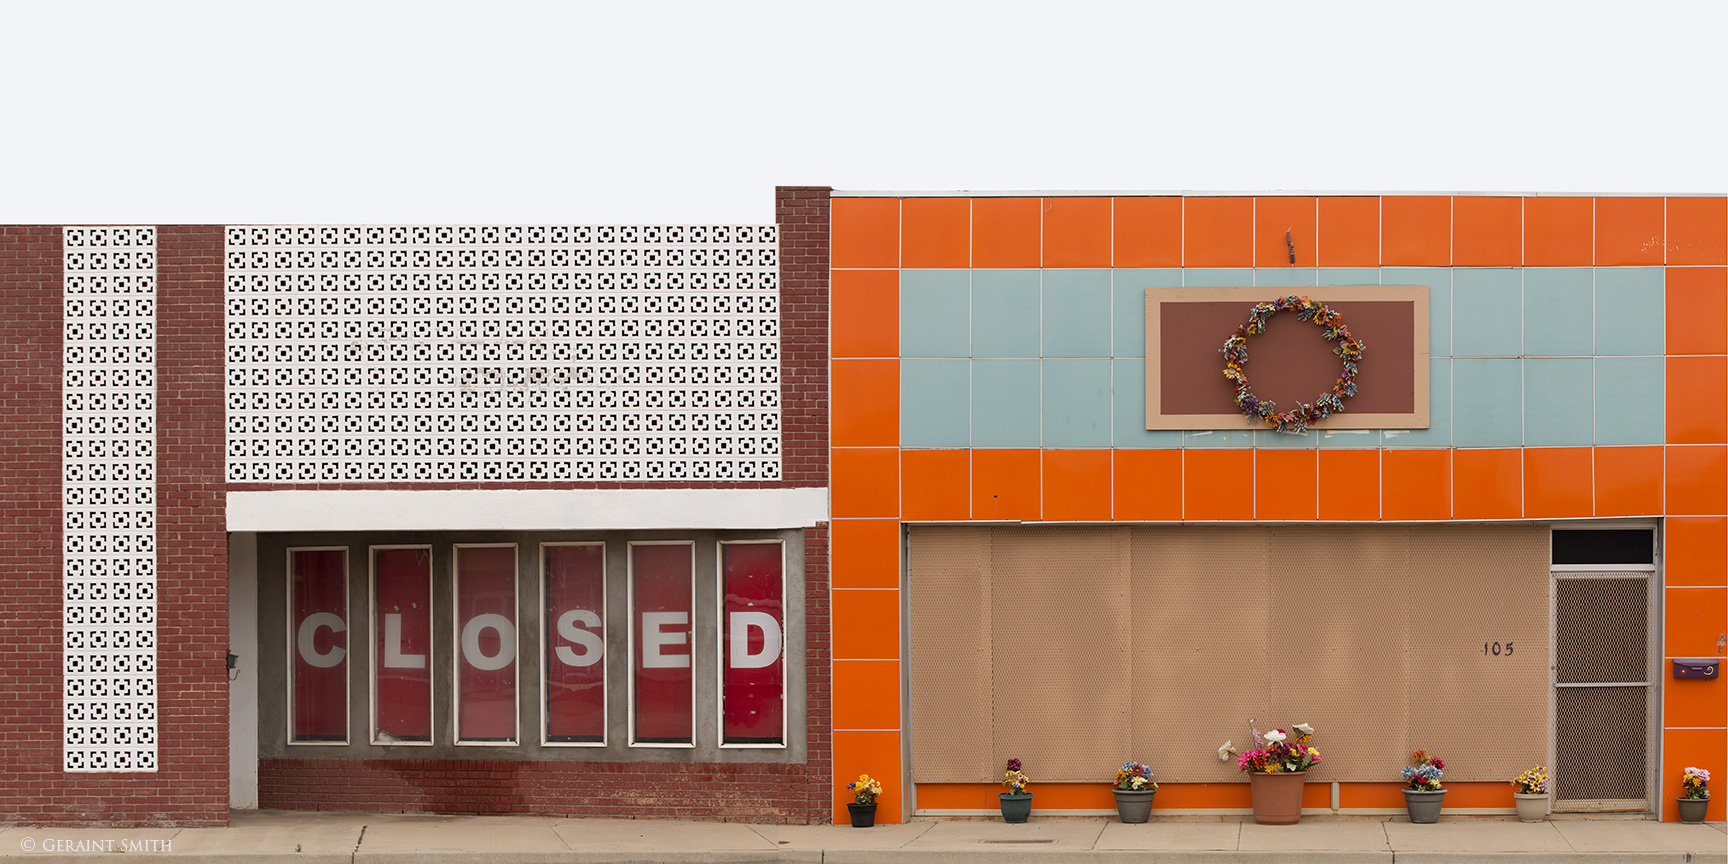 Closed and potted plant store front, Tucumcari, NM